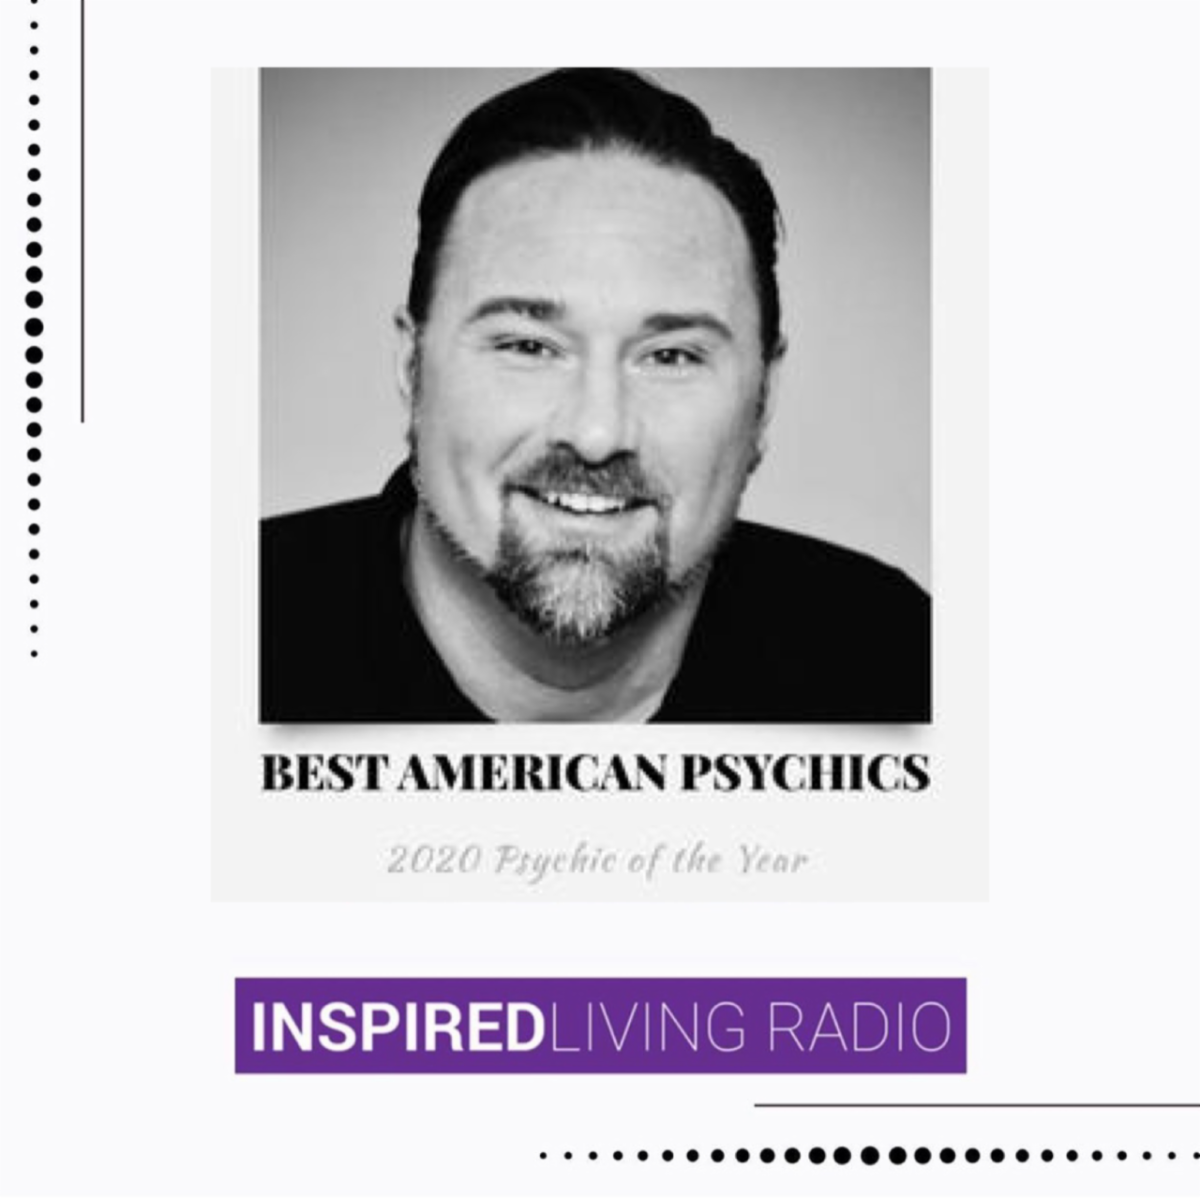 Marc Lainhart - POY - Inspired Living Radio.png